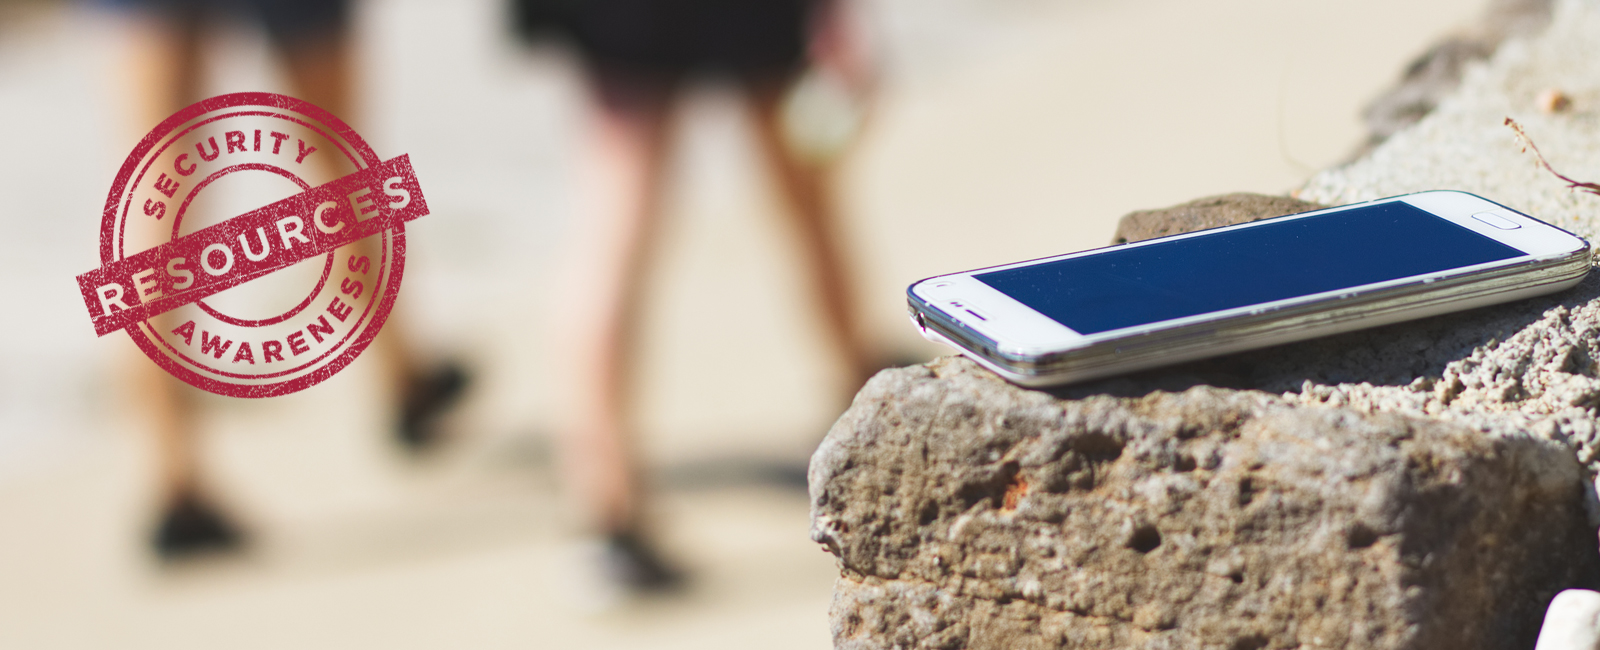 photo of mobile device sitting on stone wall